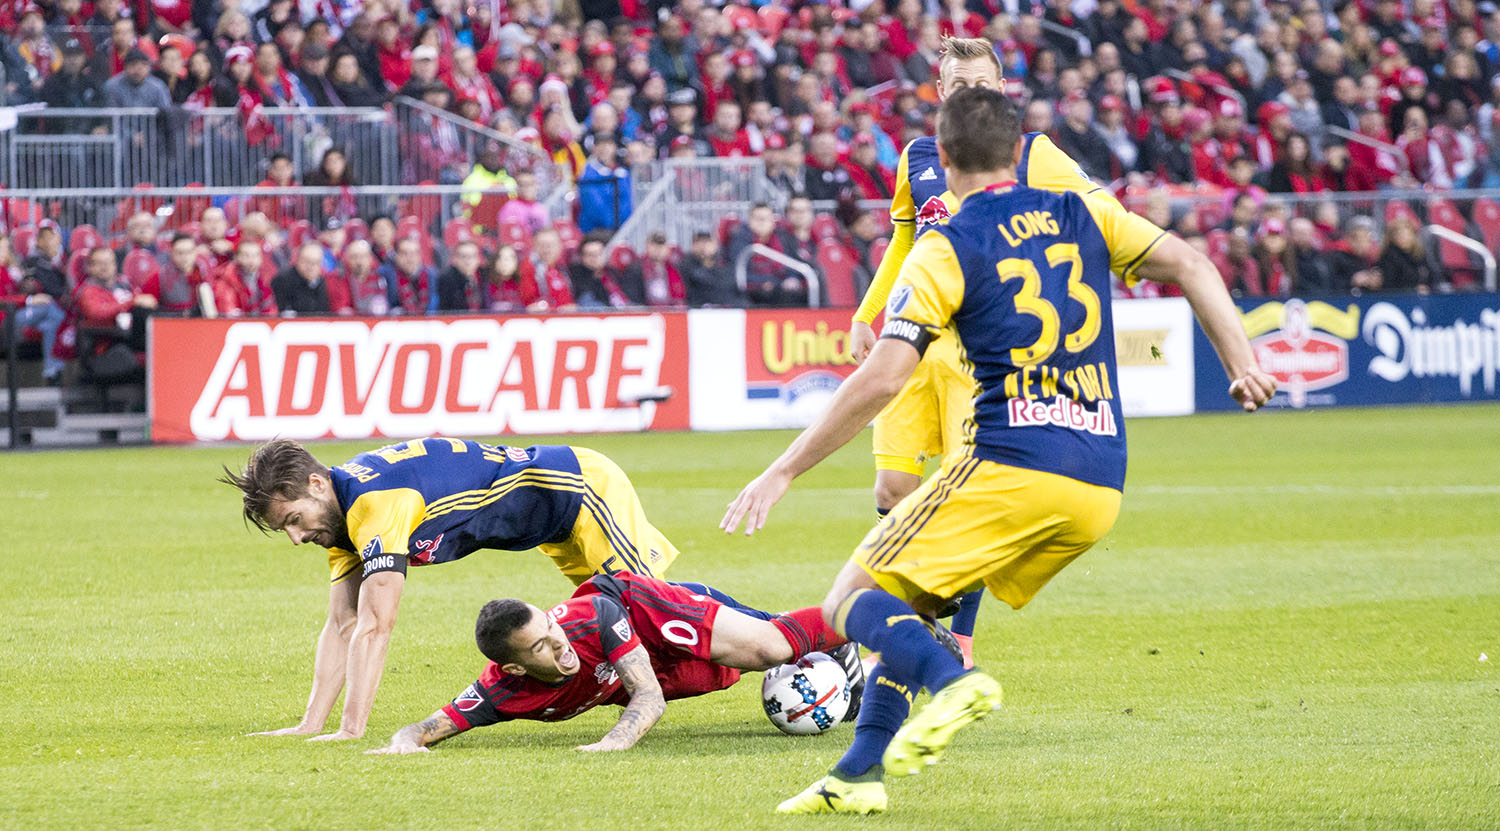 Sebastian Giovinco is taken down to ground as he attempts to get to the ball surrounded by three NYRB players. Image by Dennis Marciniak of denMAR Media.